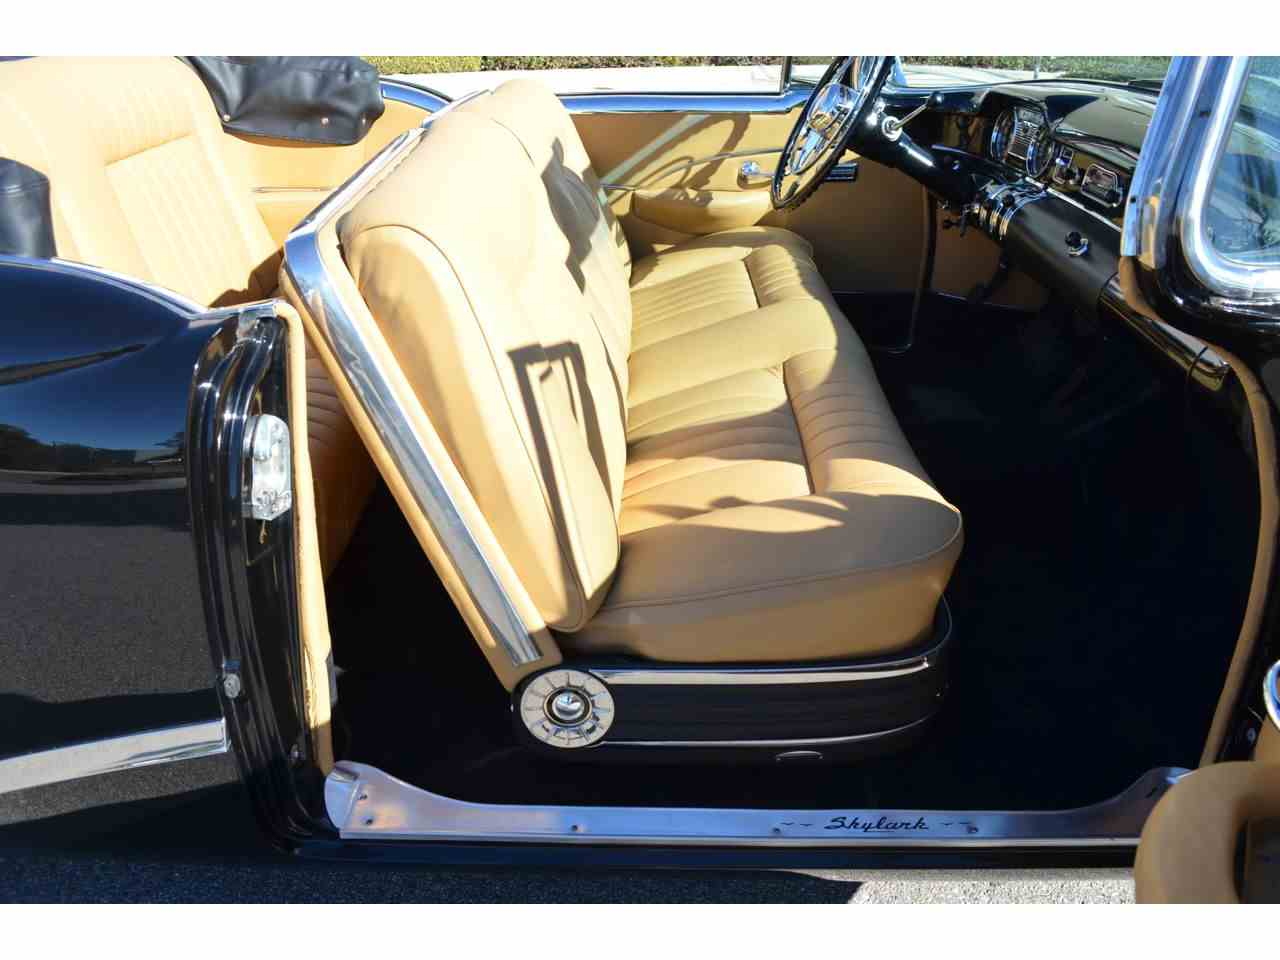 Large Picture of Classic 1954 Buick Skylark located in Oxnard California - $129,000.00 Offered by Spoke Motors - LT5D